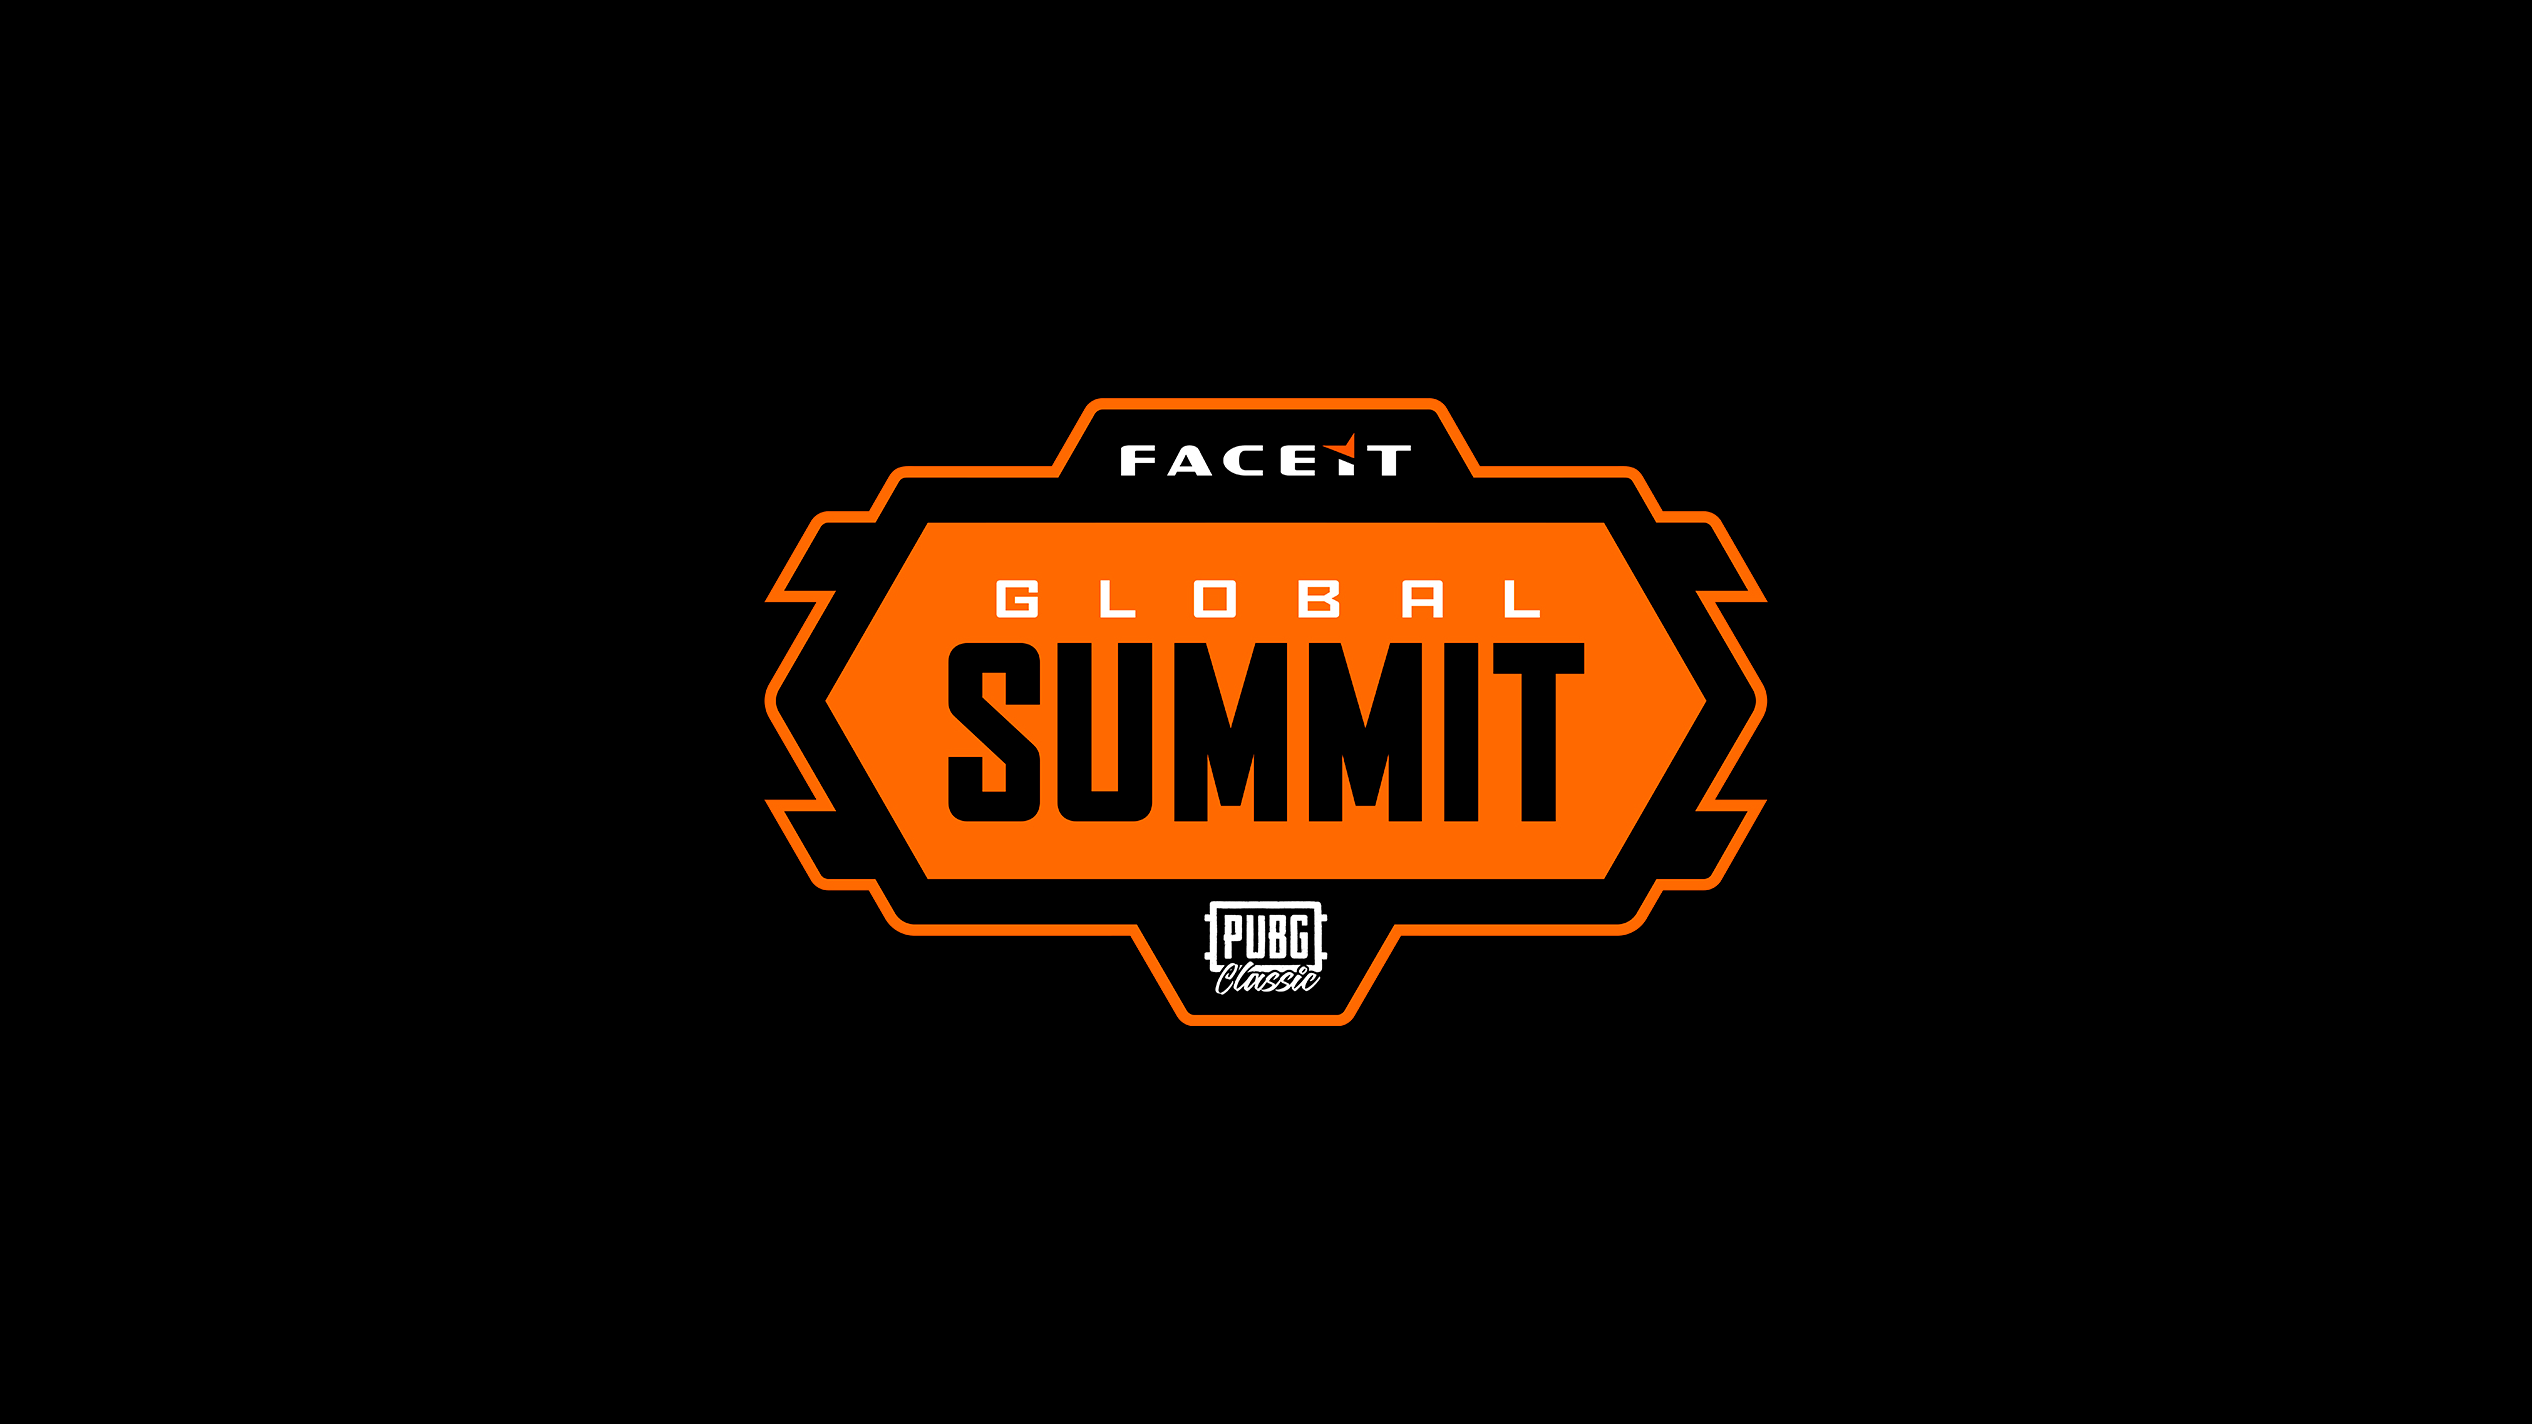 FACEIT Global Summit will be the first of Three PUBG Classics